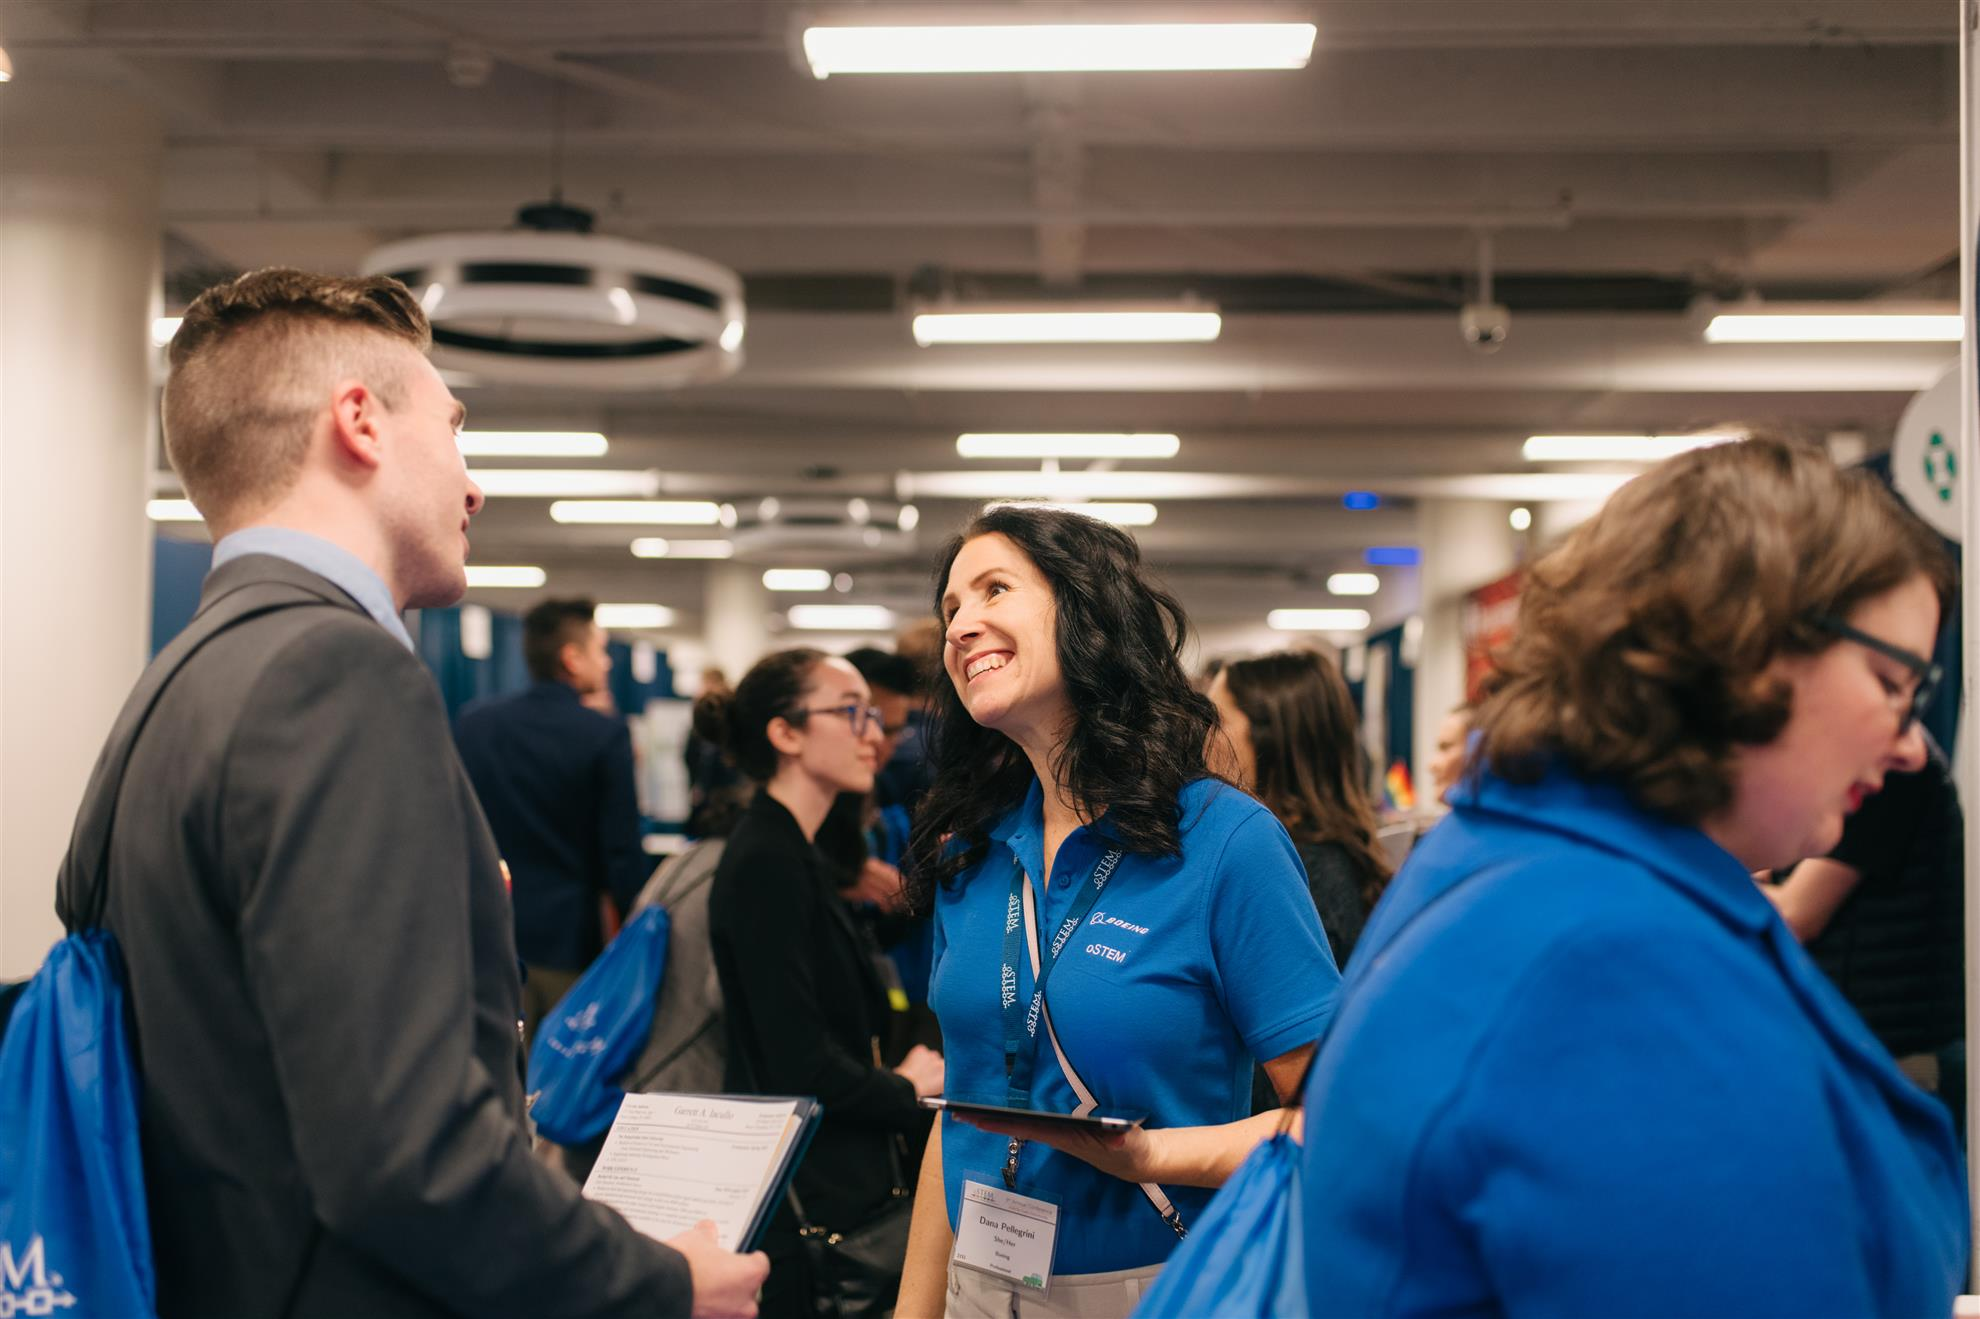 Conference 2019 - People smiling and talking